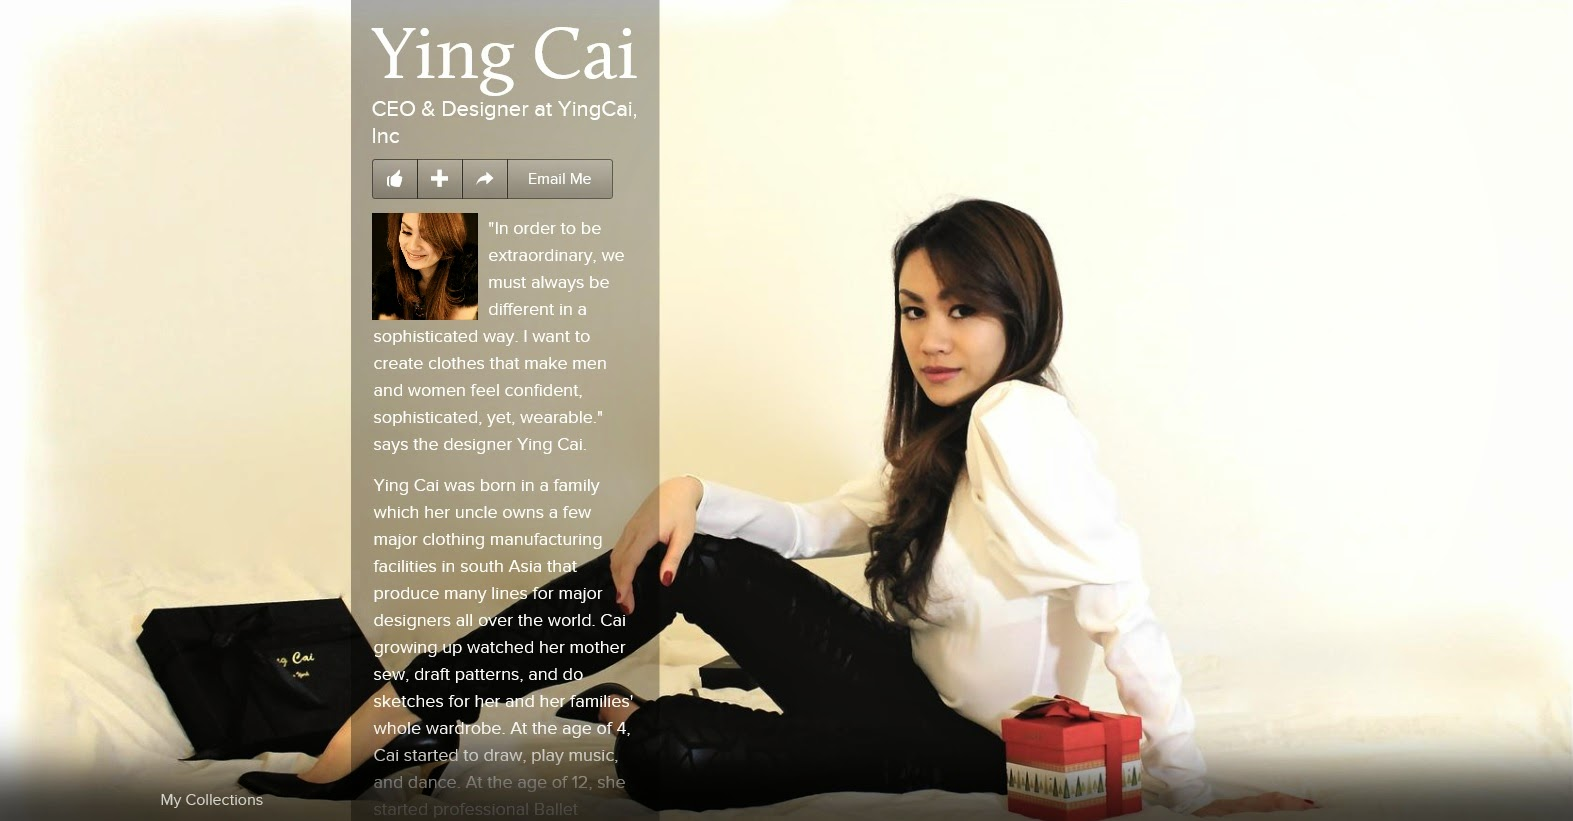 Ying Cai, CEO & Fashion Designer at YingCai, Inc.